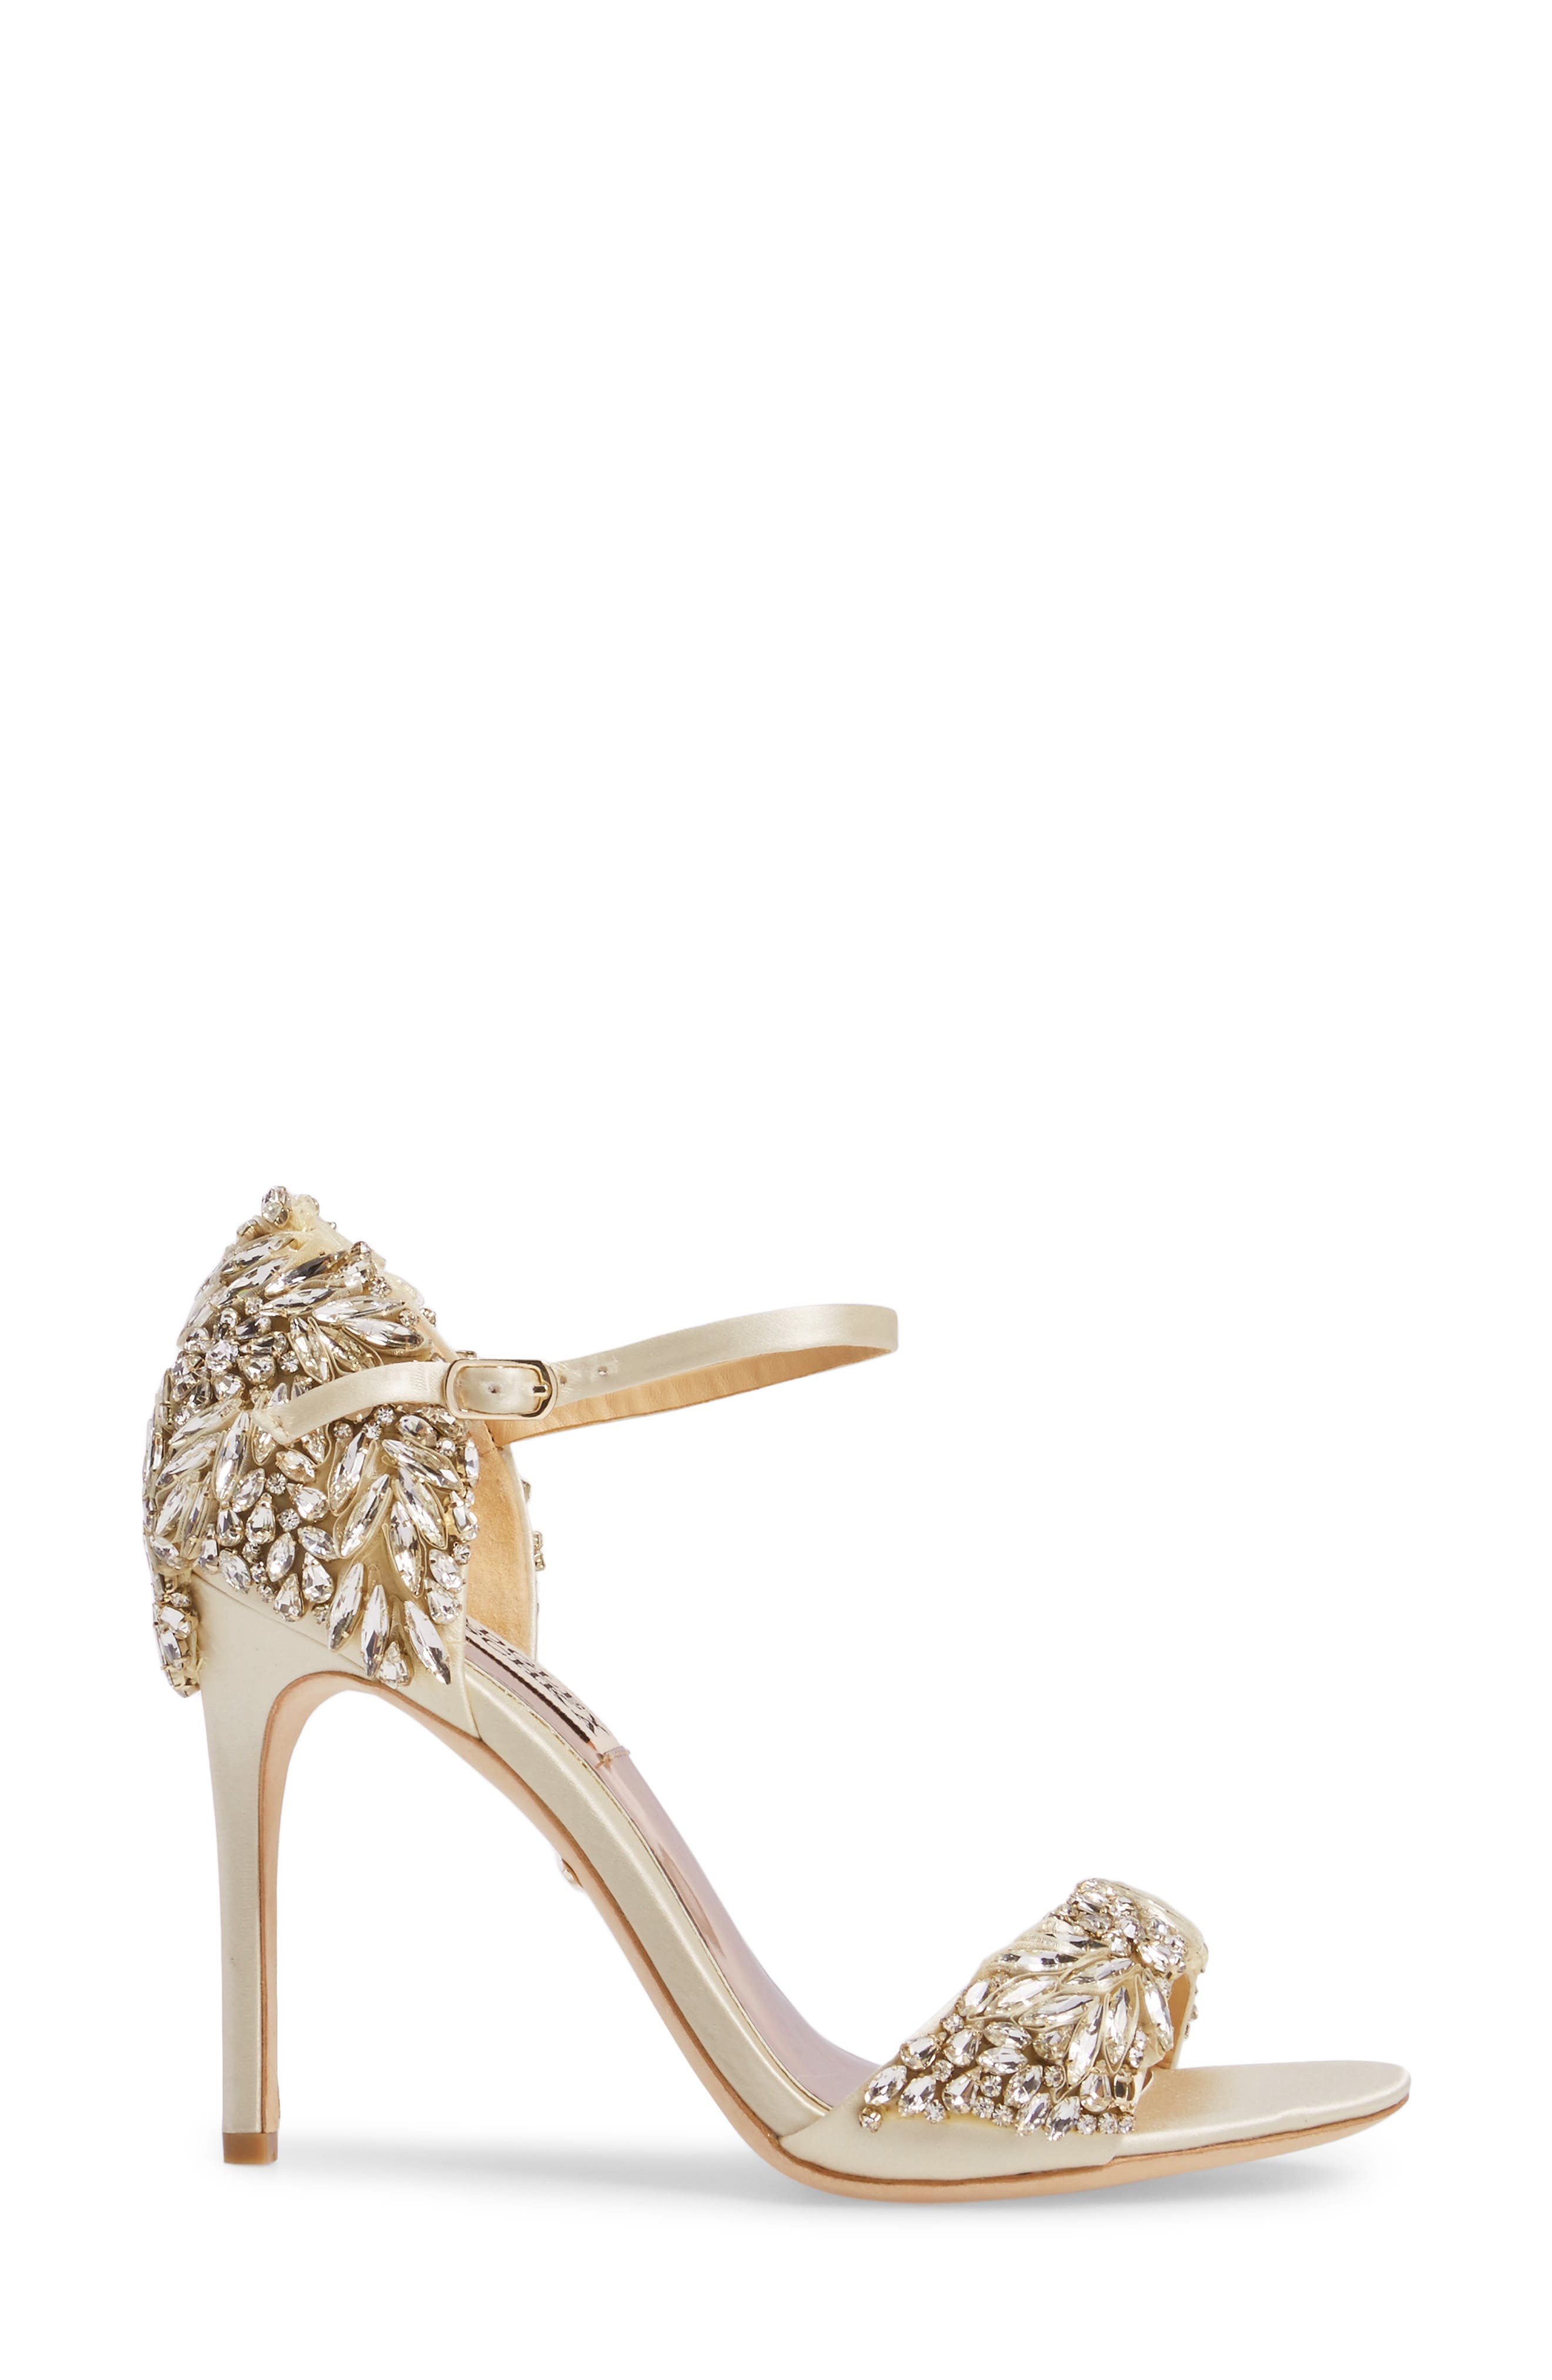 BADGLEY MISCHKA COLLECTION, Badgley Mischka Tampa Ankle Strap Sandal, Alternate thumbnail 3, color, IVORY SATIN